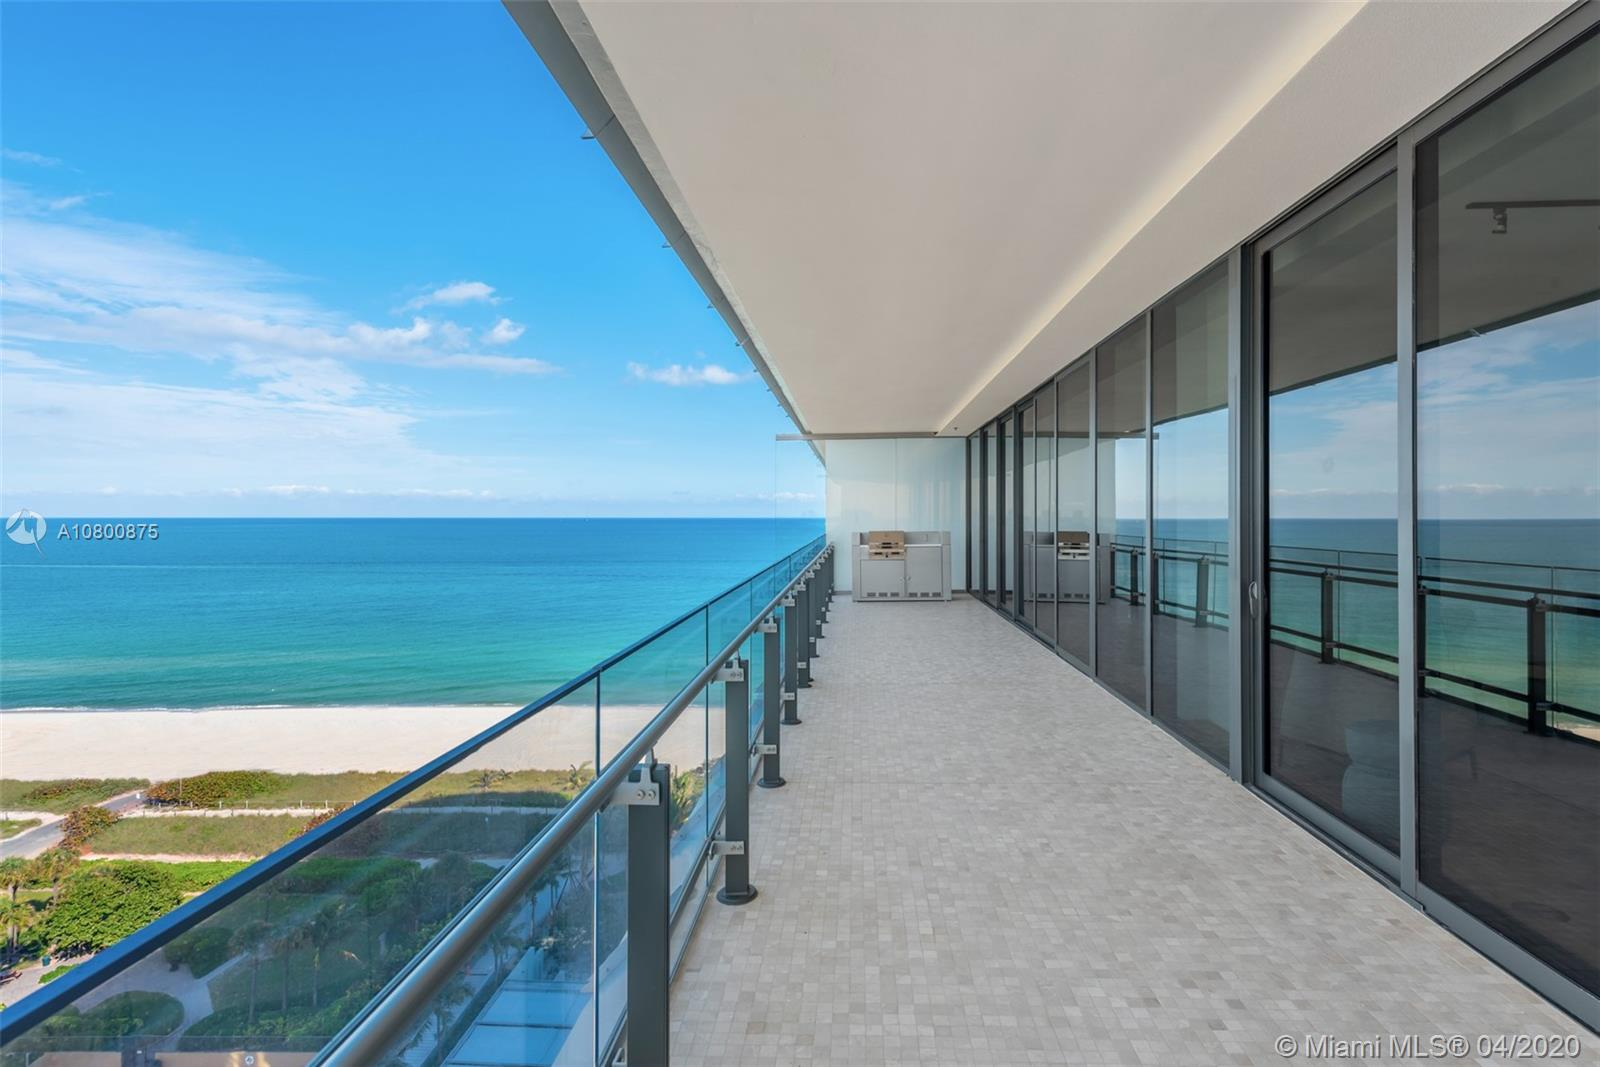 Eighty Seven Park by Priztker award-winning architect Renzo Piano is a selection of oceanfront residences designed to seamlessly embrace park and ocean in Miami Beach's most coveted seaside neighborhood. The building sits between a 35-acre ocean front park to the south and private 2-acre park to the north that are designed by West 8 landscape architects. Enjoy views of the ocean, park and city skyline. Full service building with concierge, 2 pools, full service spa, ocean view gym, and wine bar.